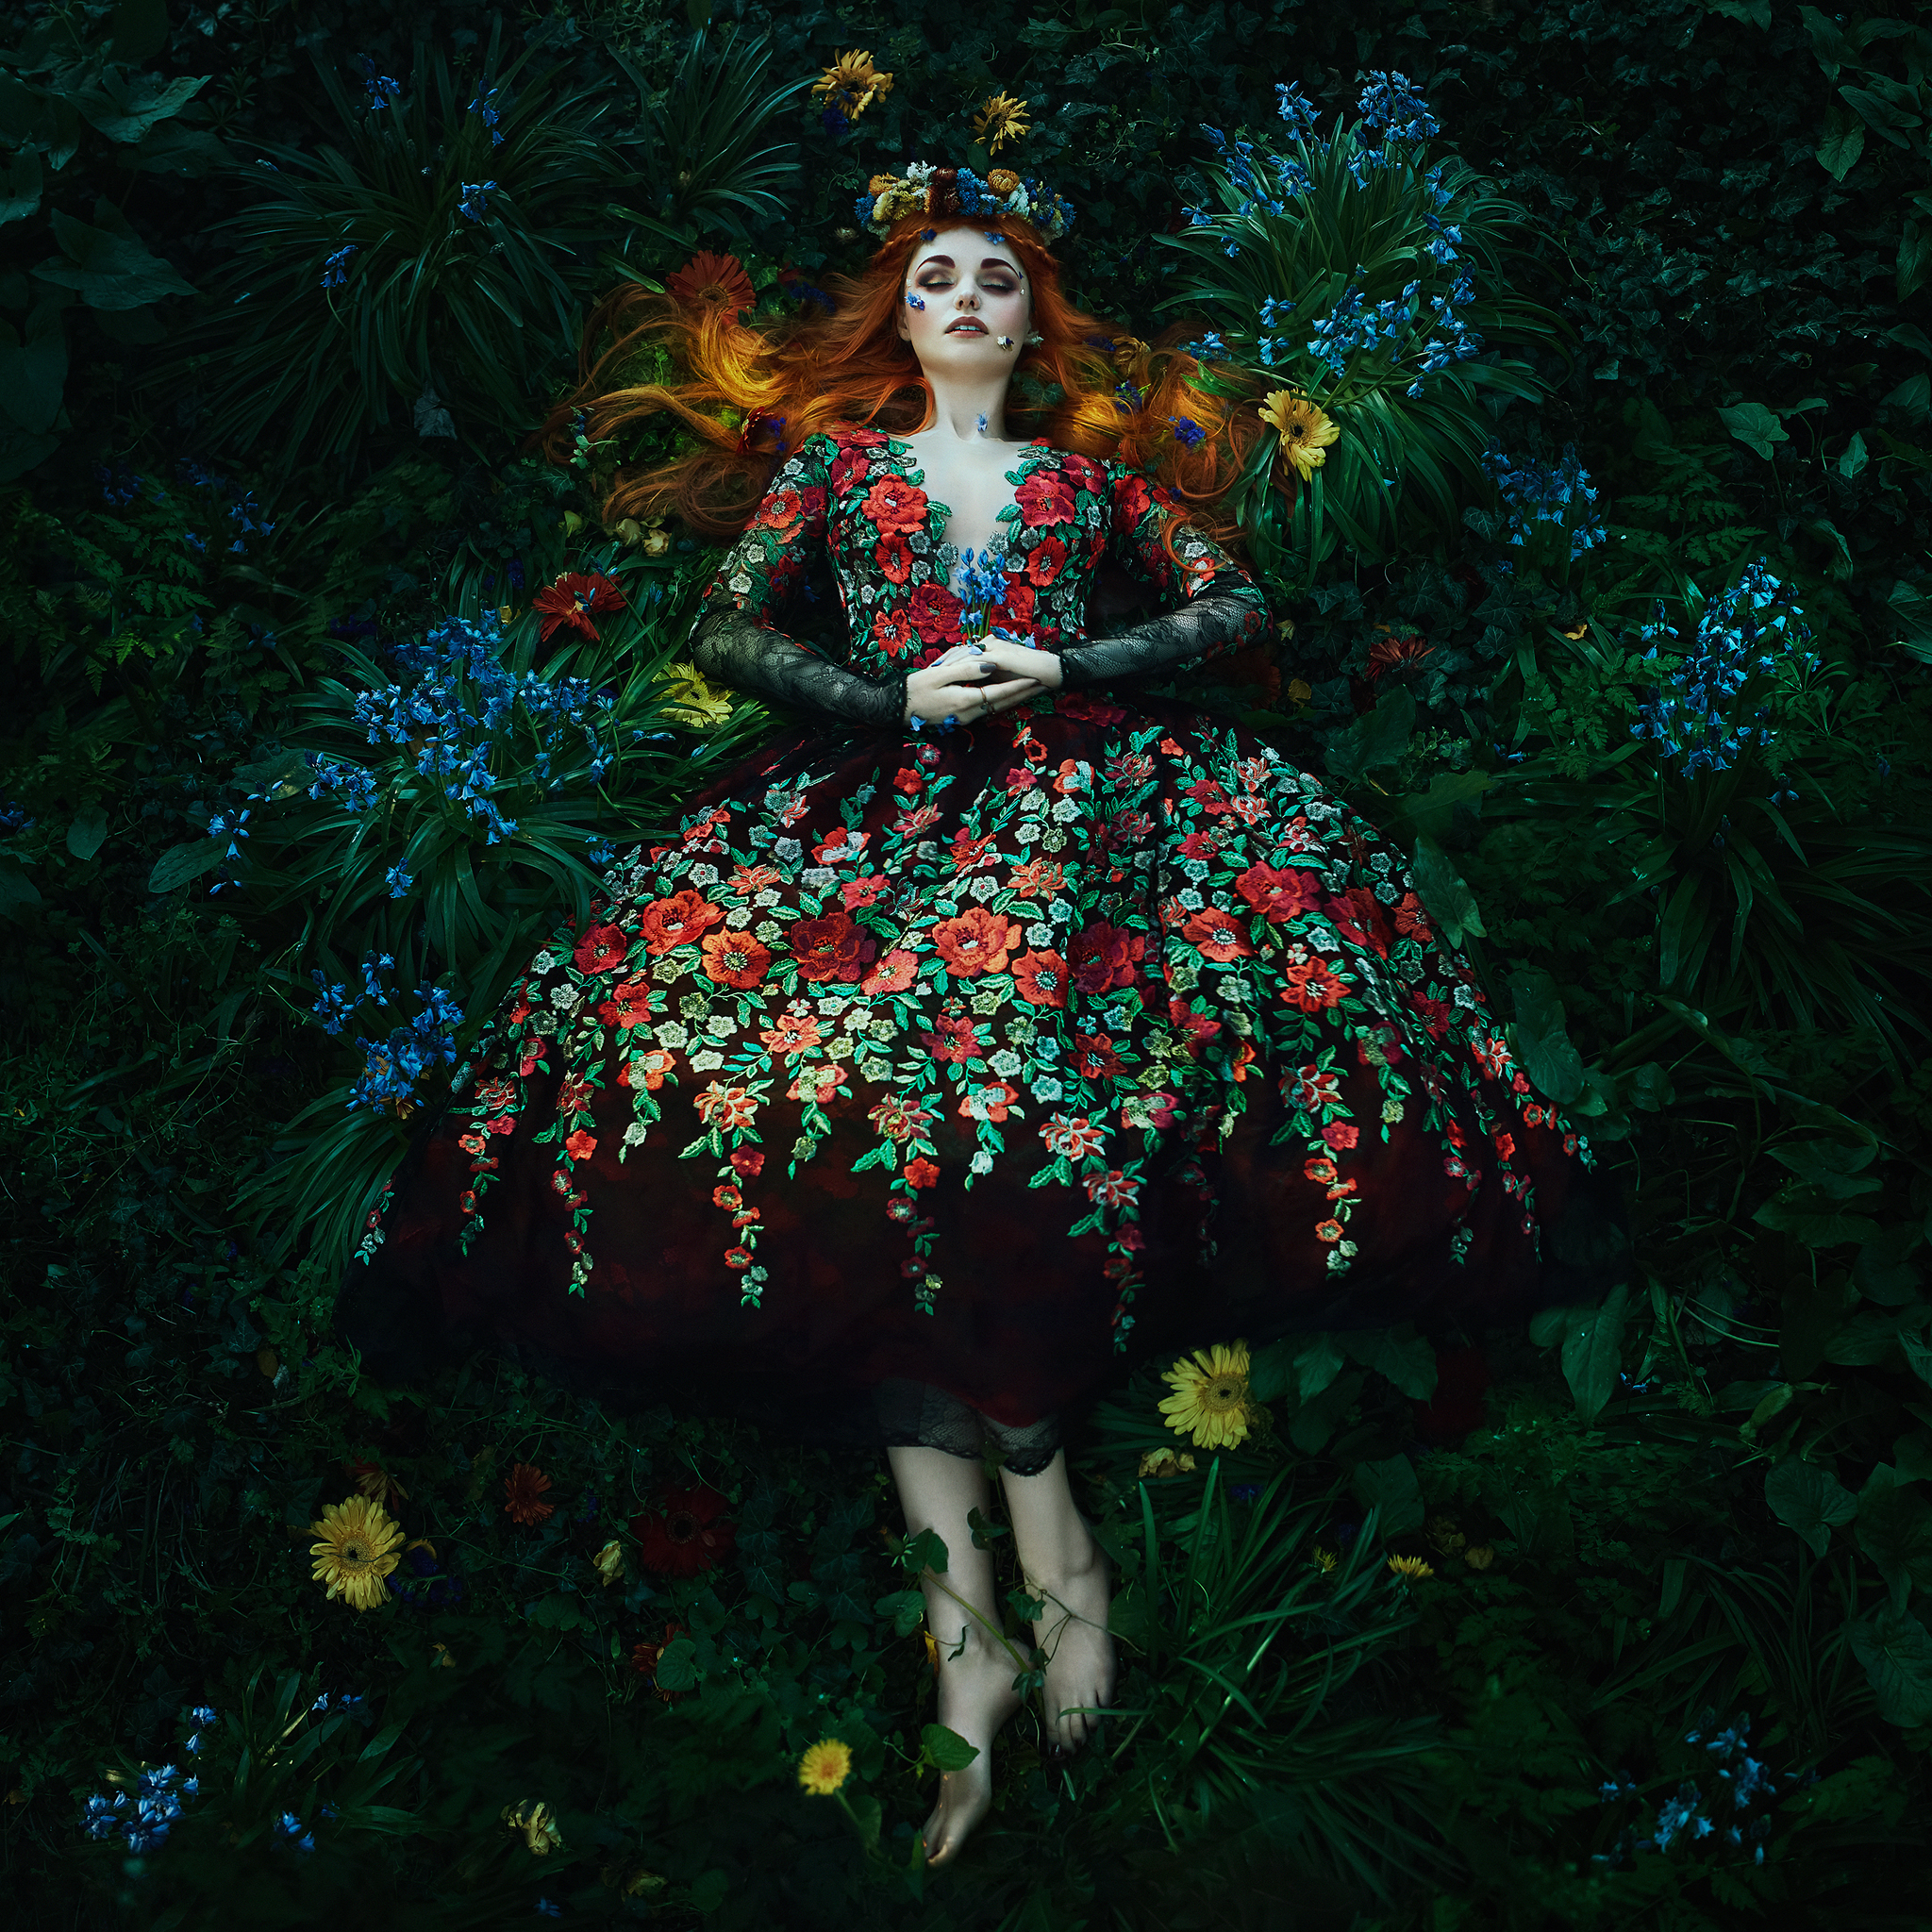 Eden    -   Bella Kotak.  Limited edition 60 x 60cm print with border -1 of 25. £180 - print only. To order contact:  info@elementstudios.co.uk